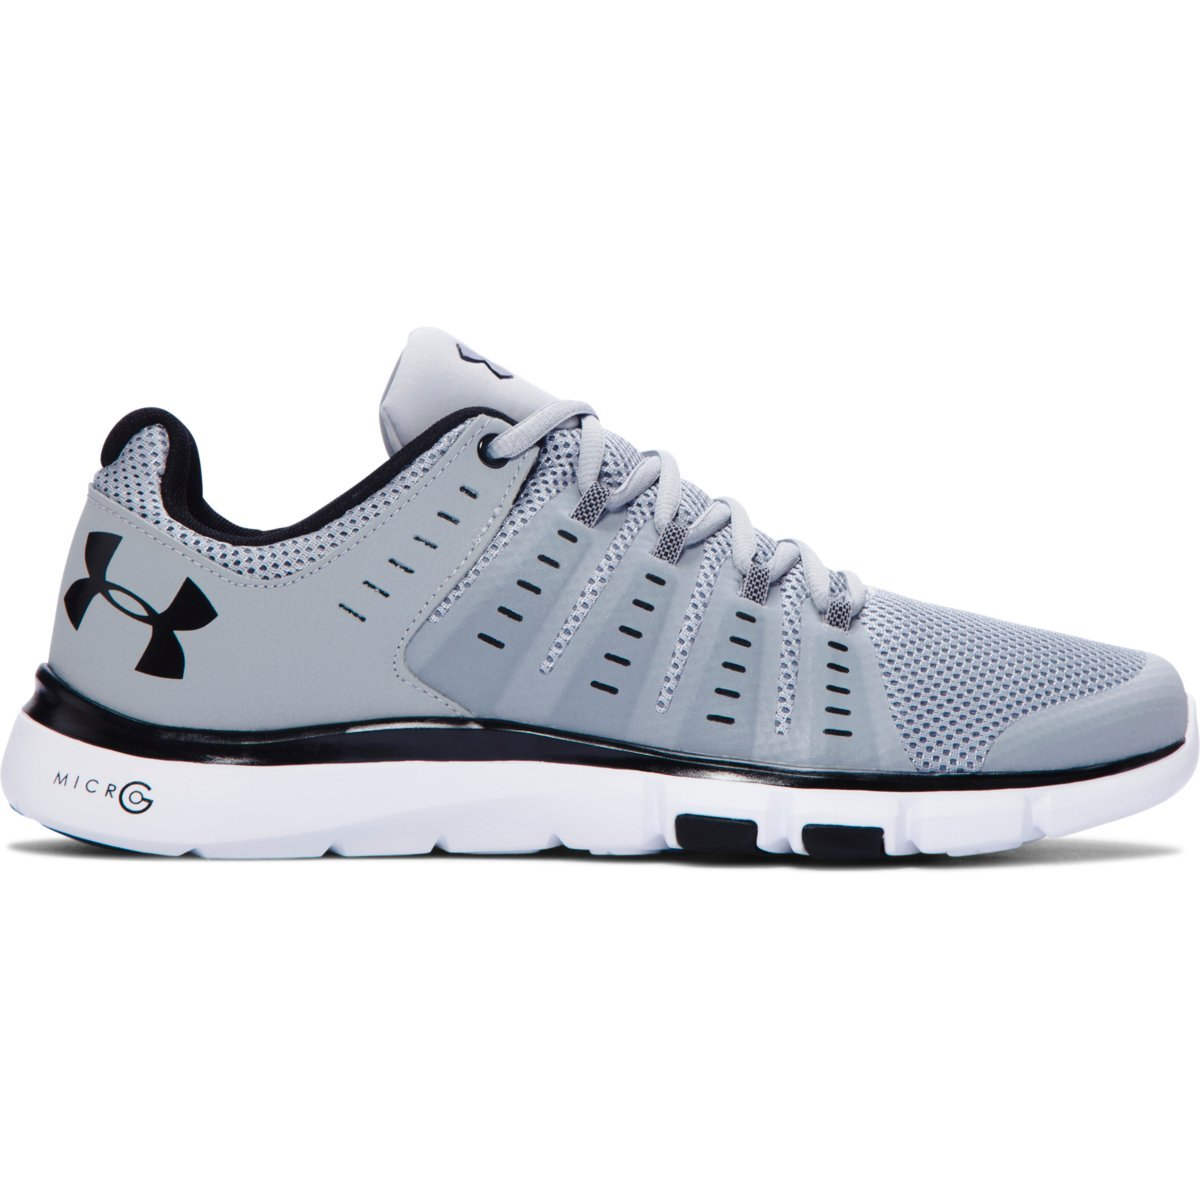 Micro G Limitless 2 Training Shoes